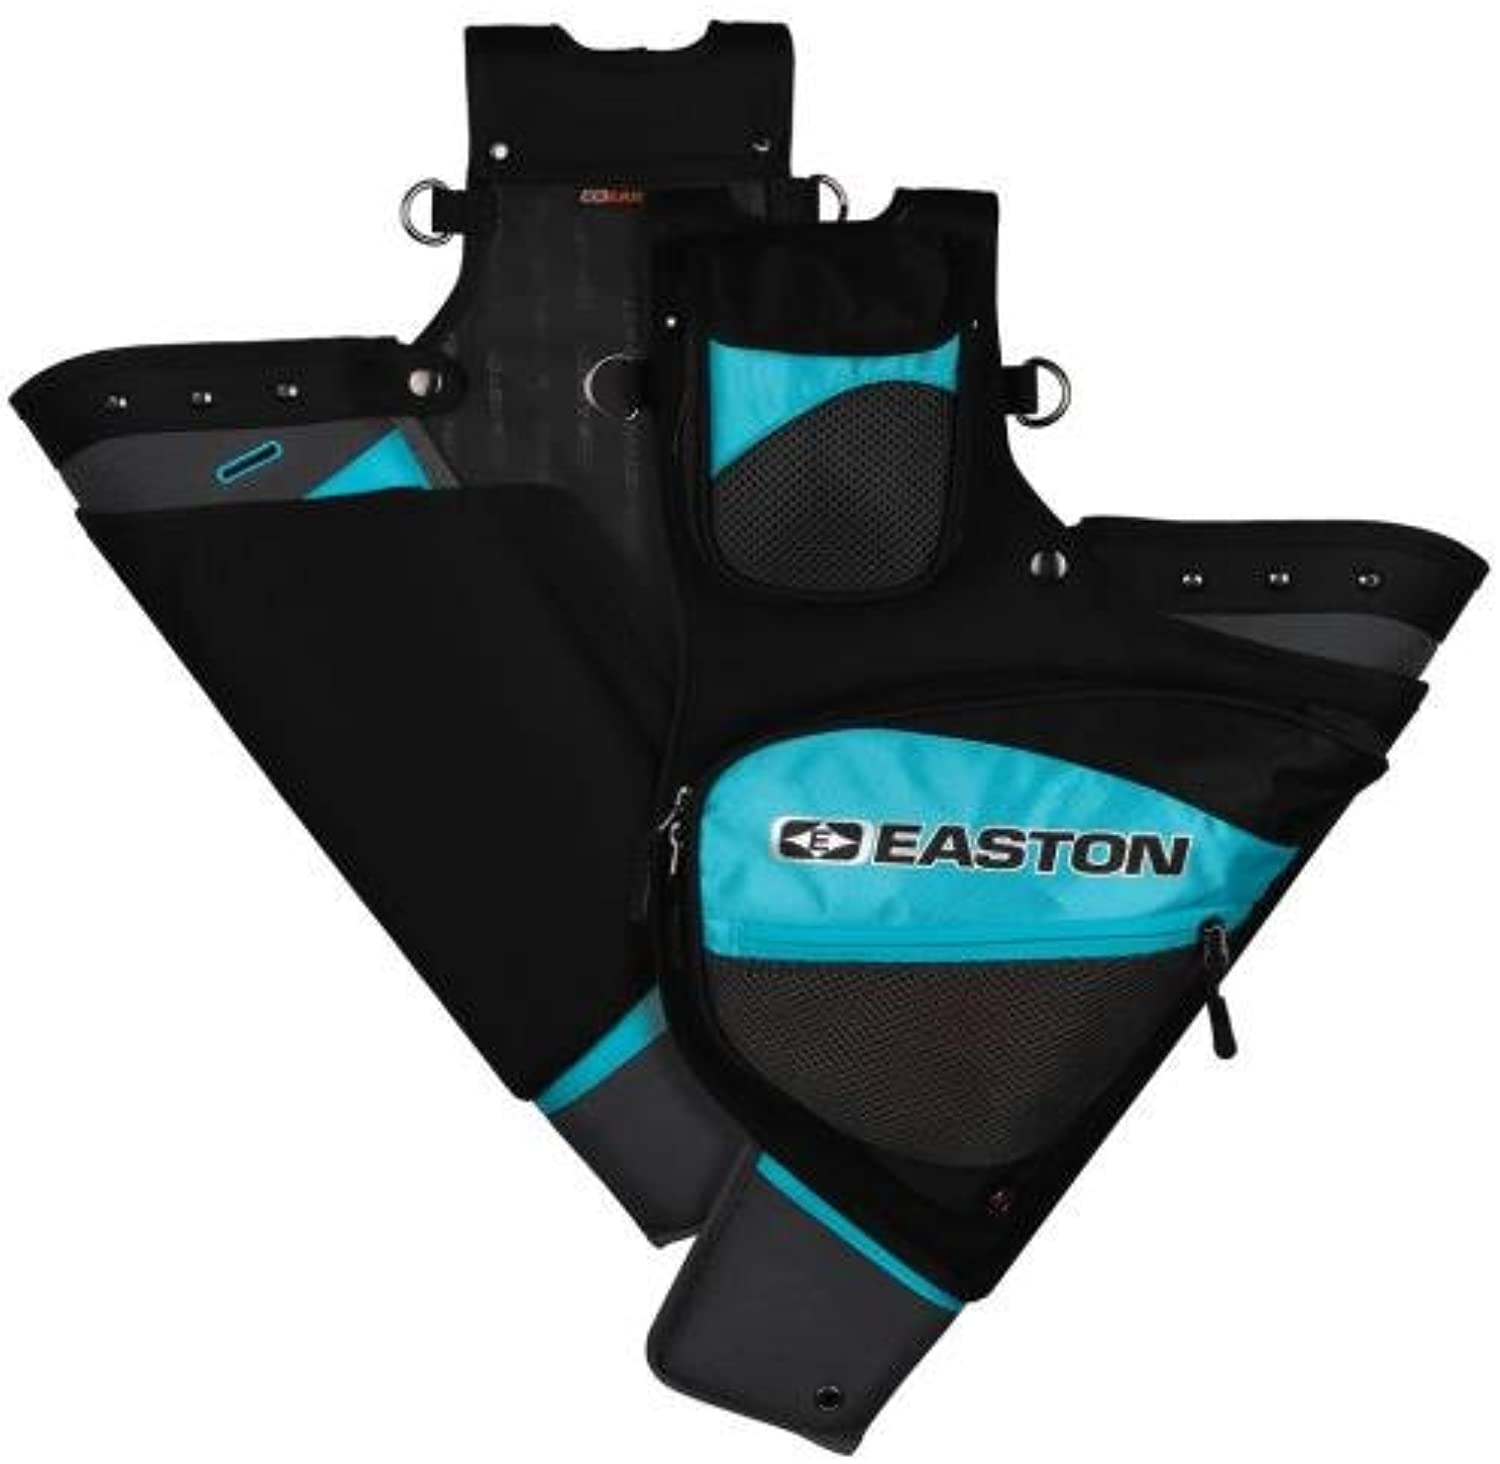 Easton Unisex-Adult Easton Deluxe Hip Quiver Teal RH 826874, Teal